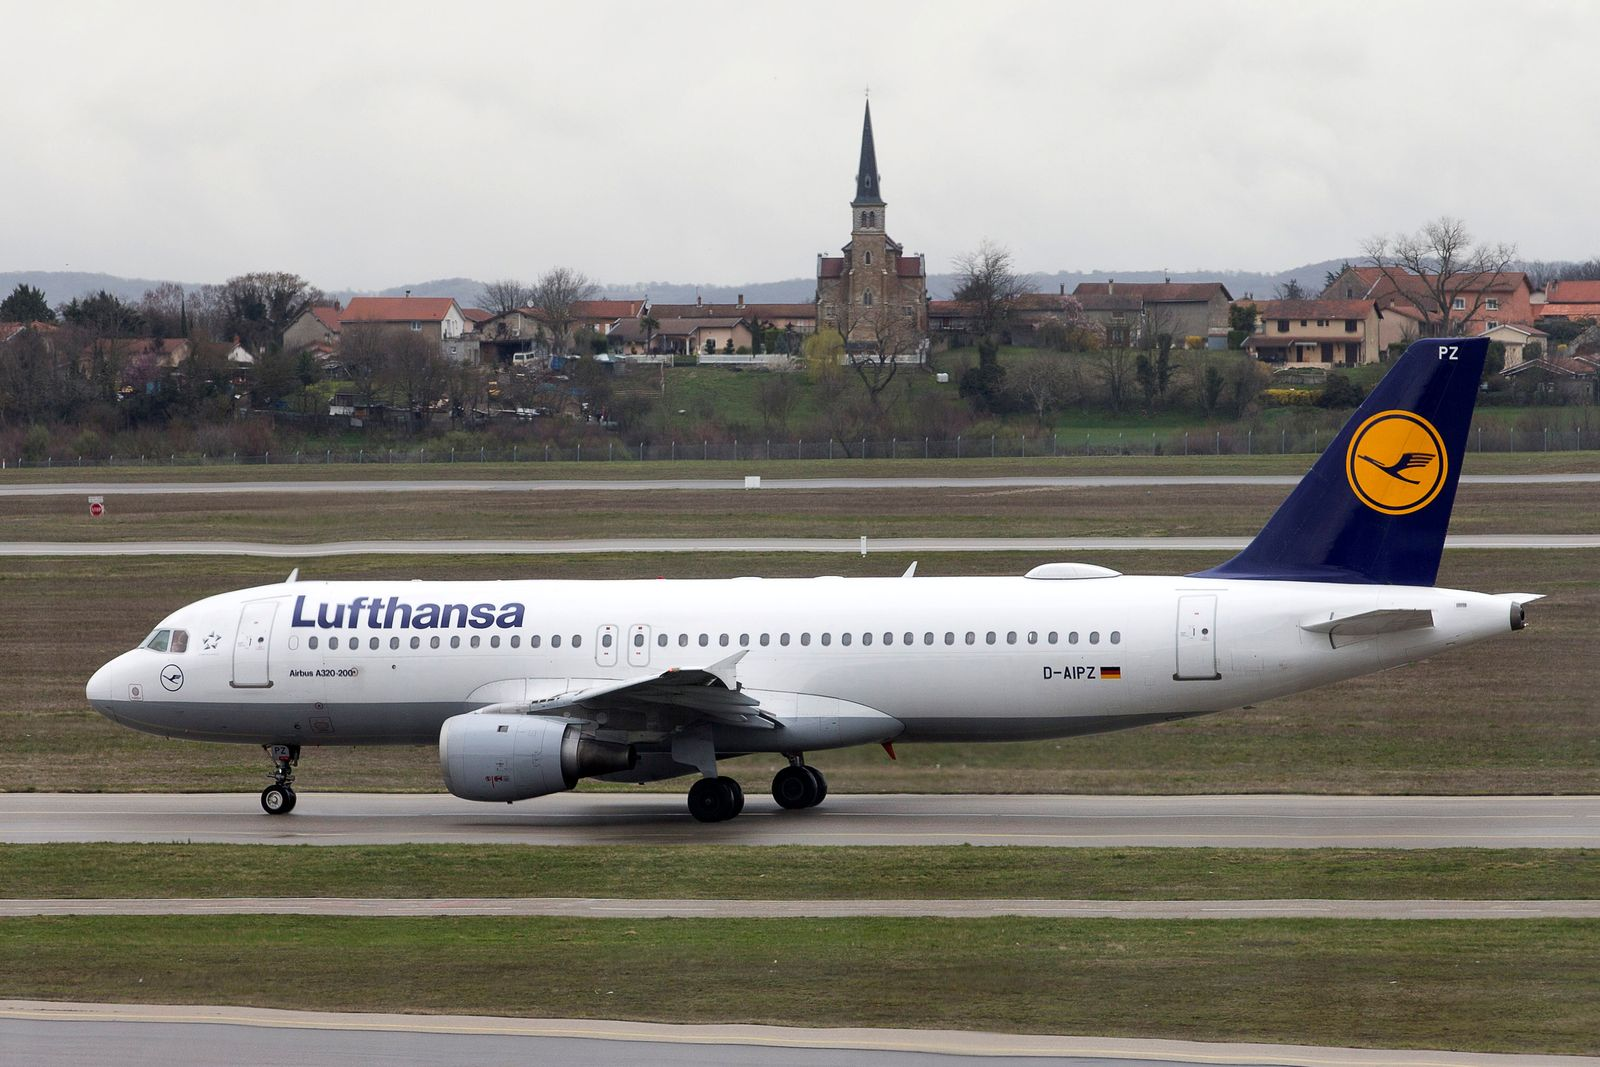 FILE PHOTO: A Lufthansa Airbus A320-200 plane is seen on the tarmac at the Lyon-Saint-Exupery airport in Colombier-Saugnieu near Lyon